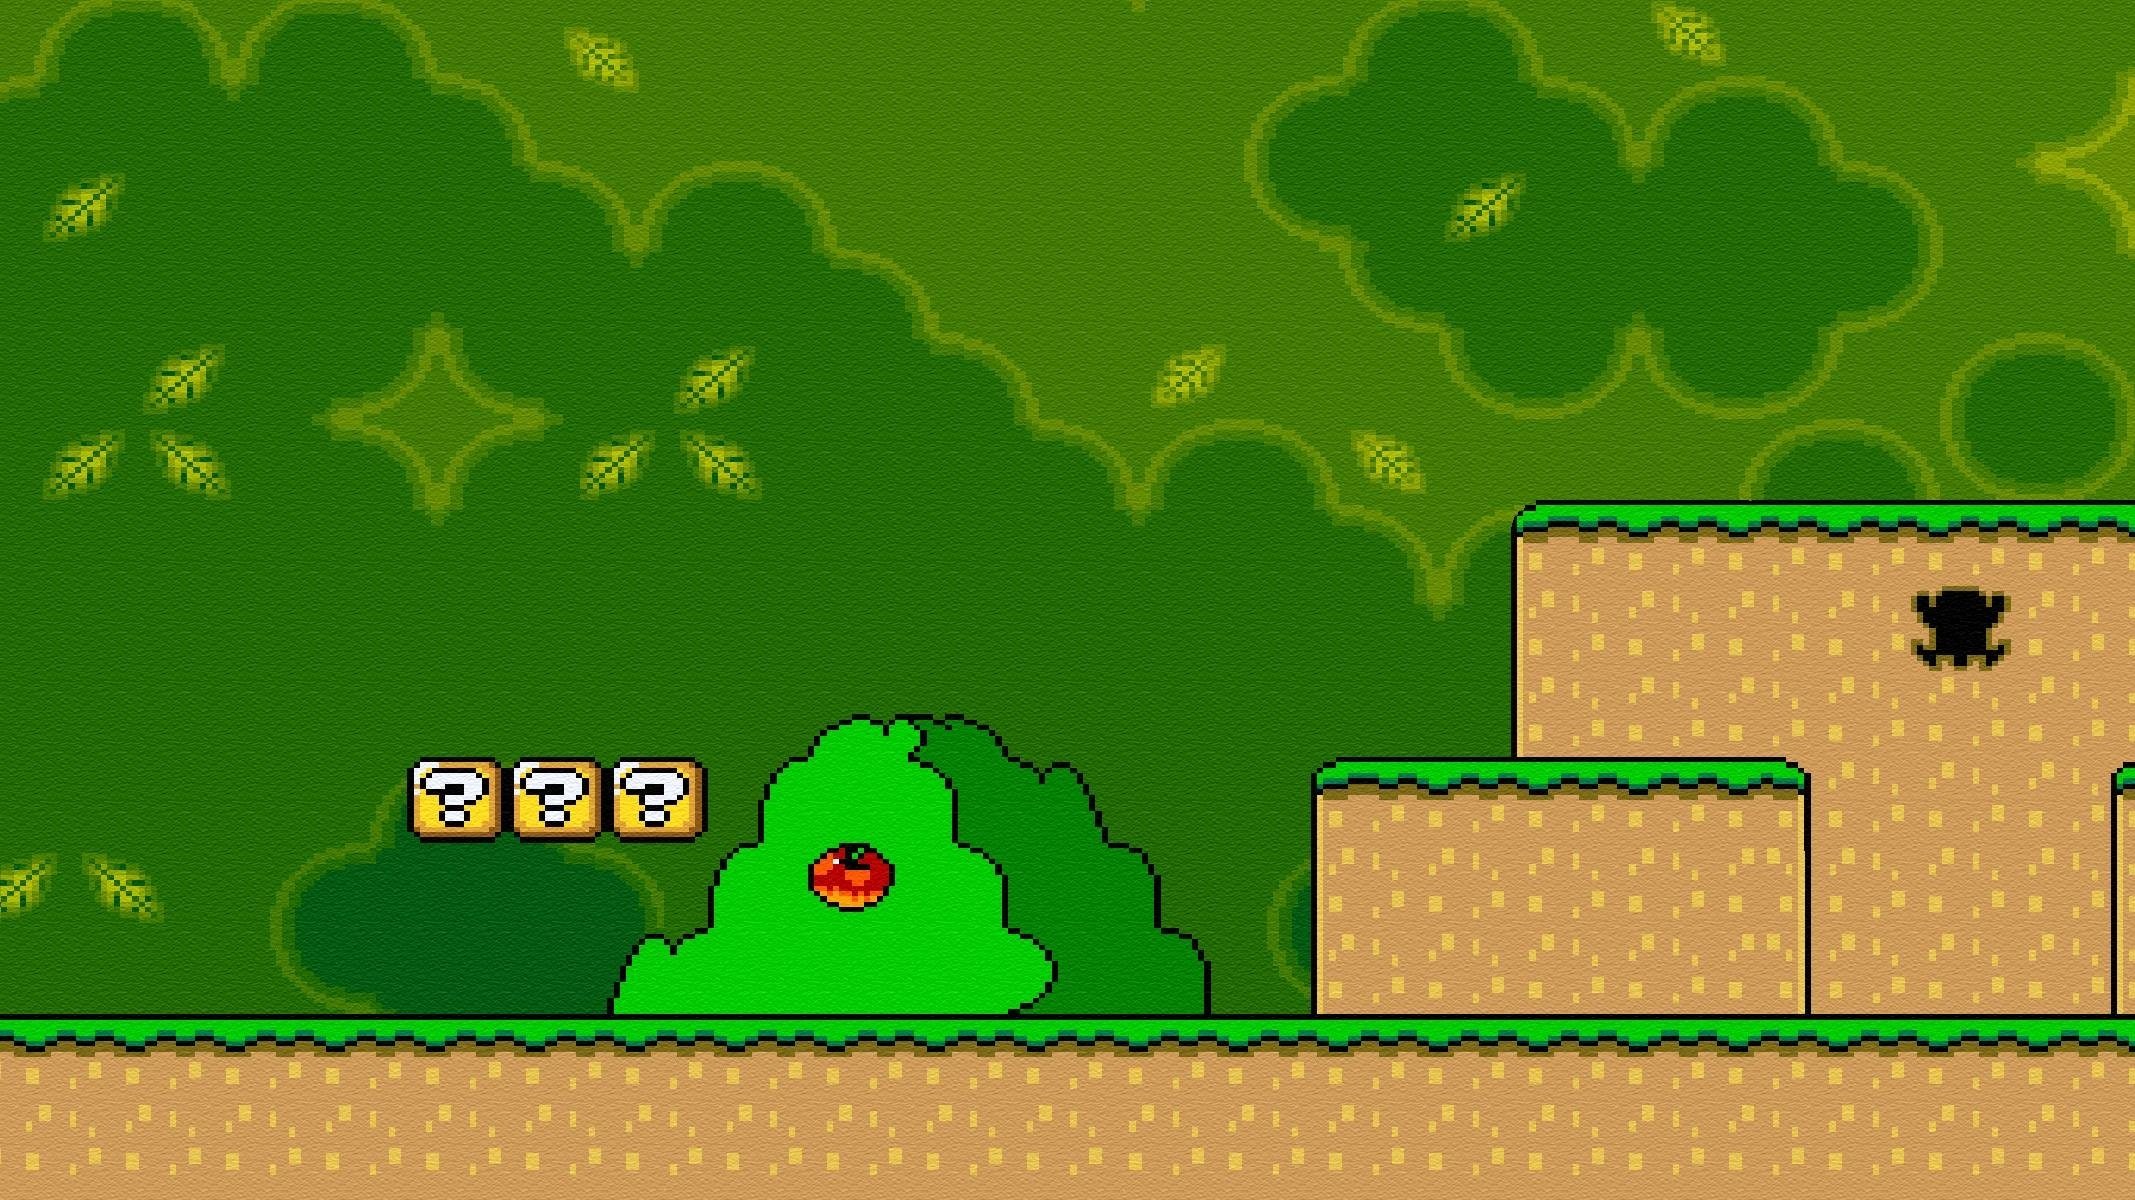 super mario world wallpapers - wallpaper cave